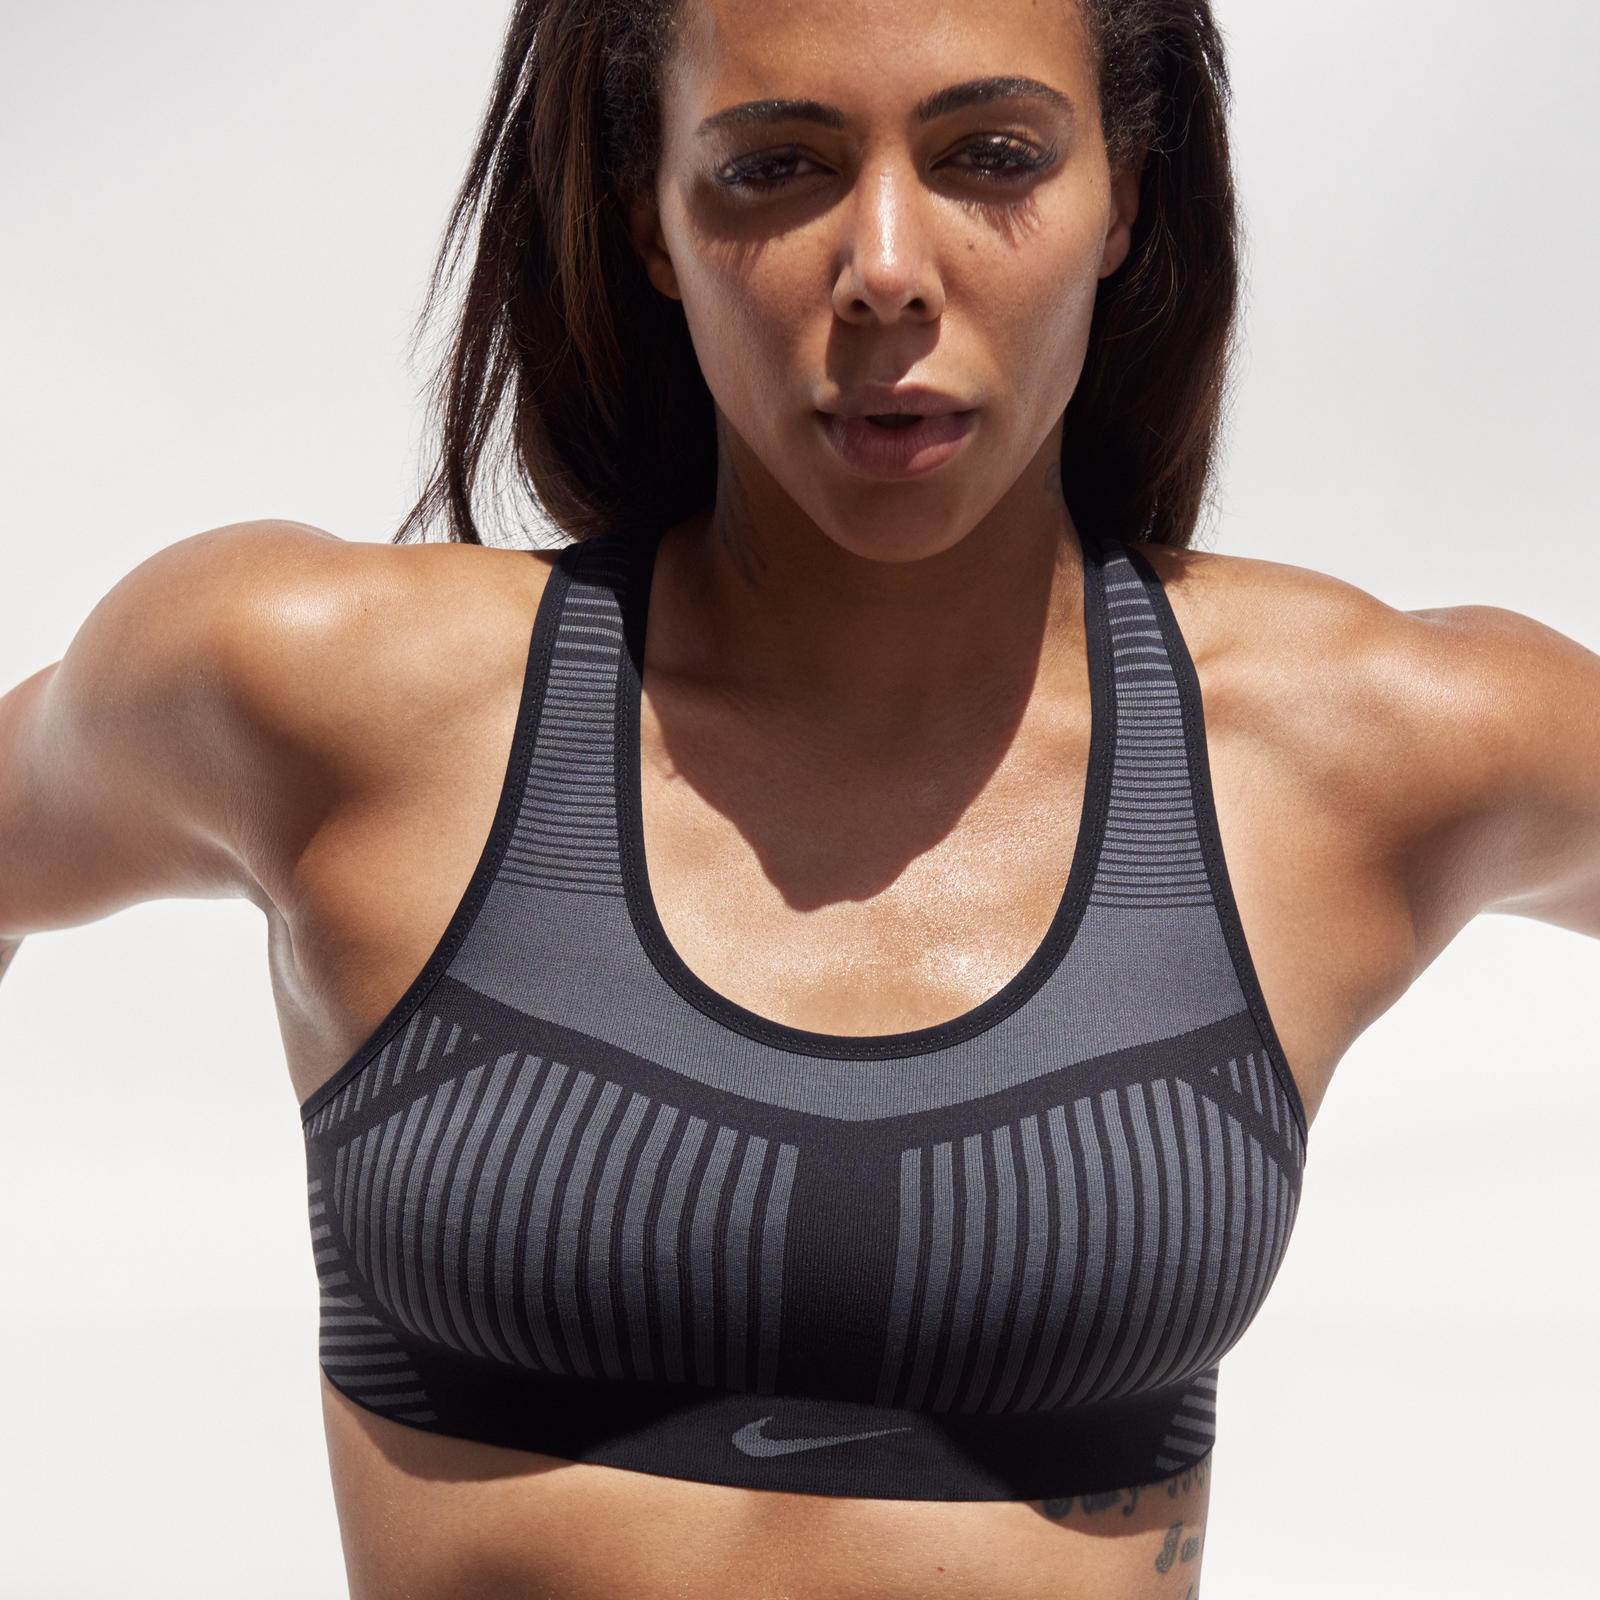 Nike's first Flyknit apparel innovation